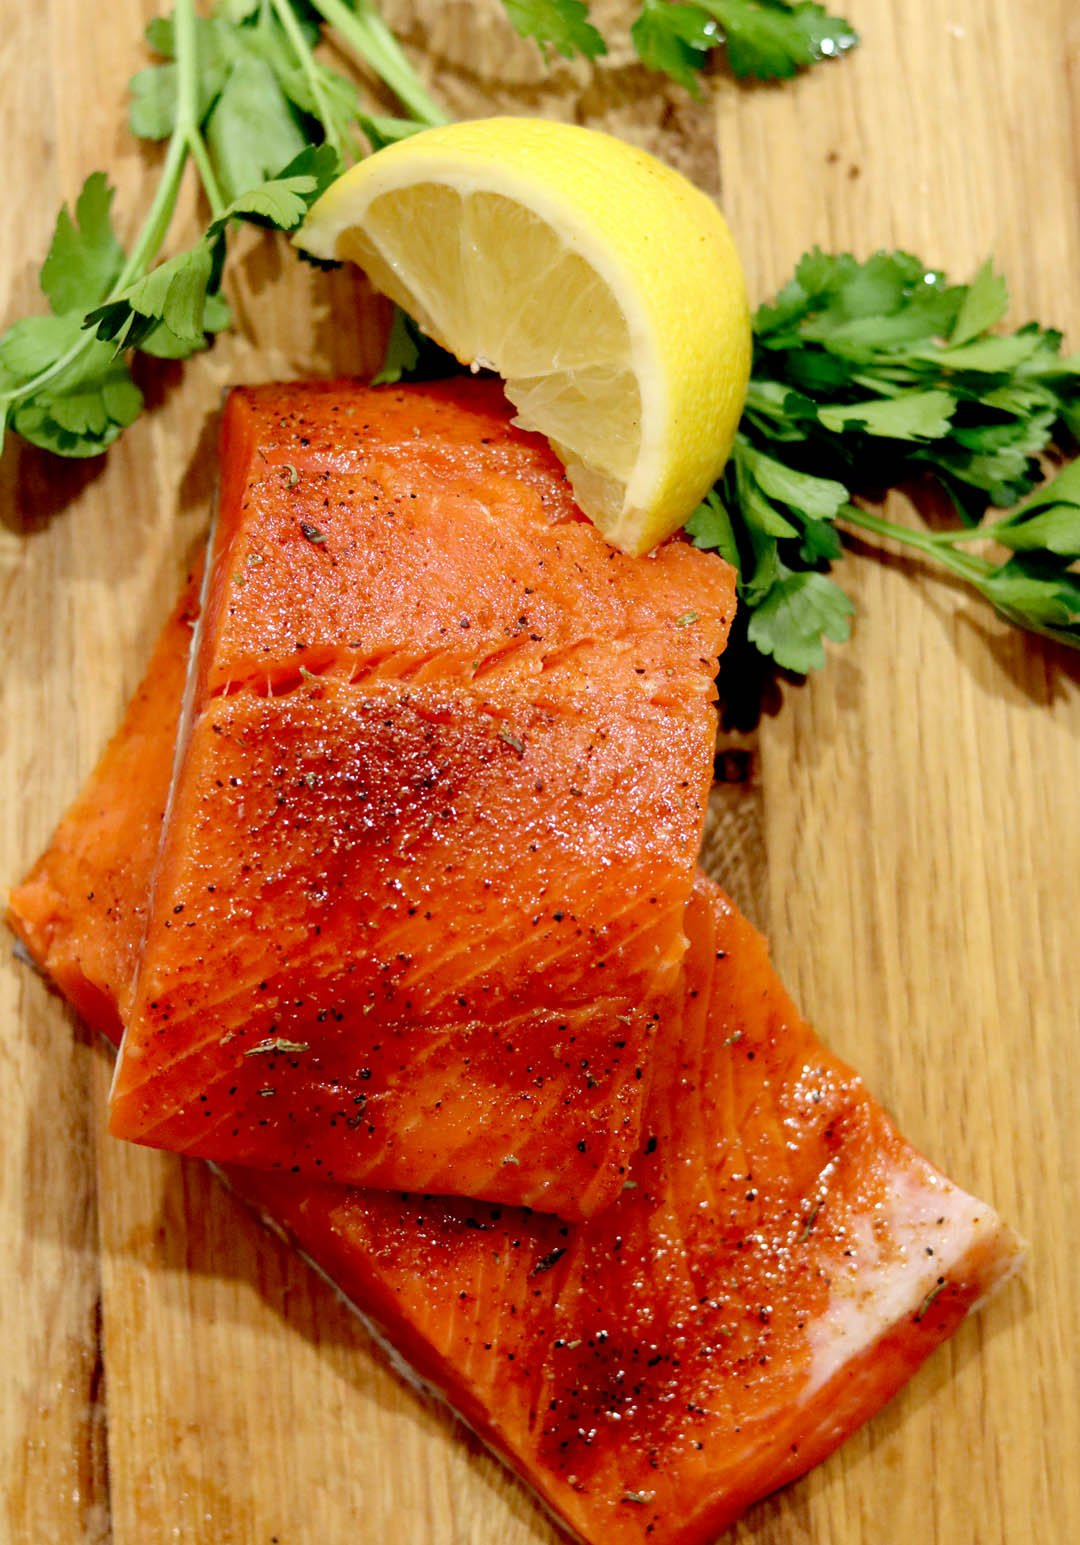 Sliced and sprinkled with rub, sockeye salmon ready for the grill. Lemon and parsley on the side.